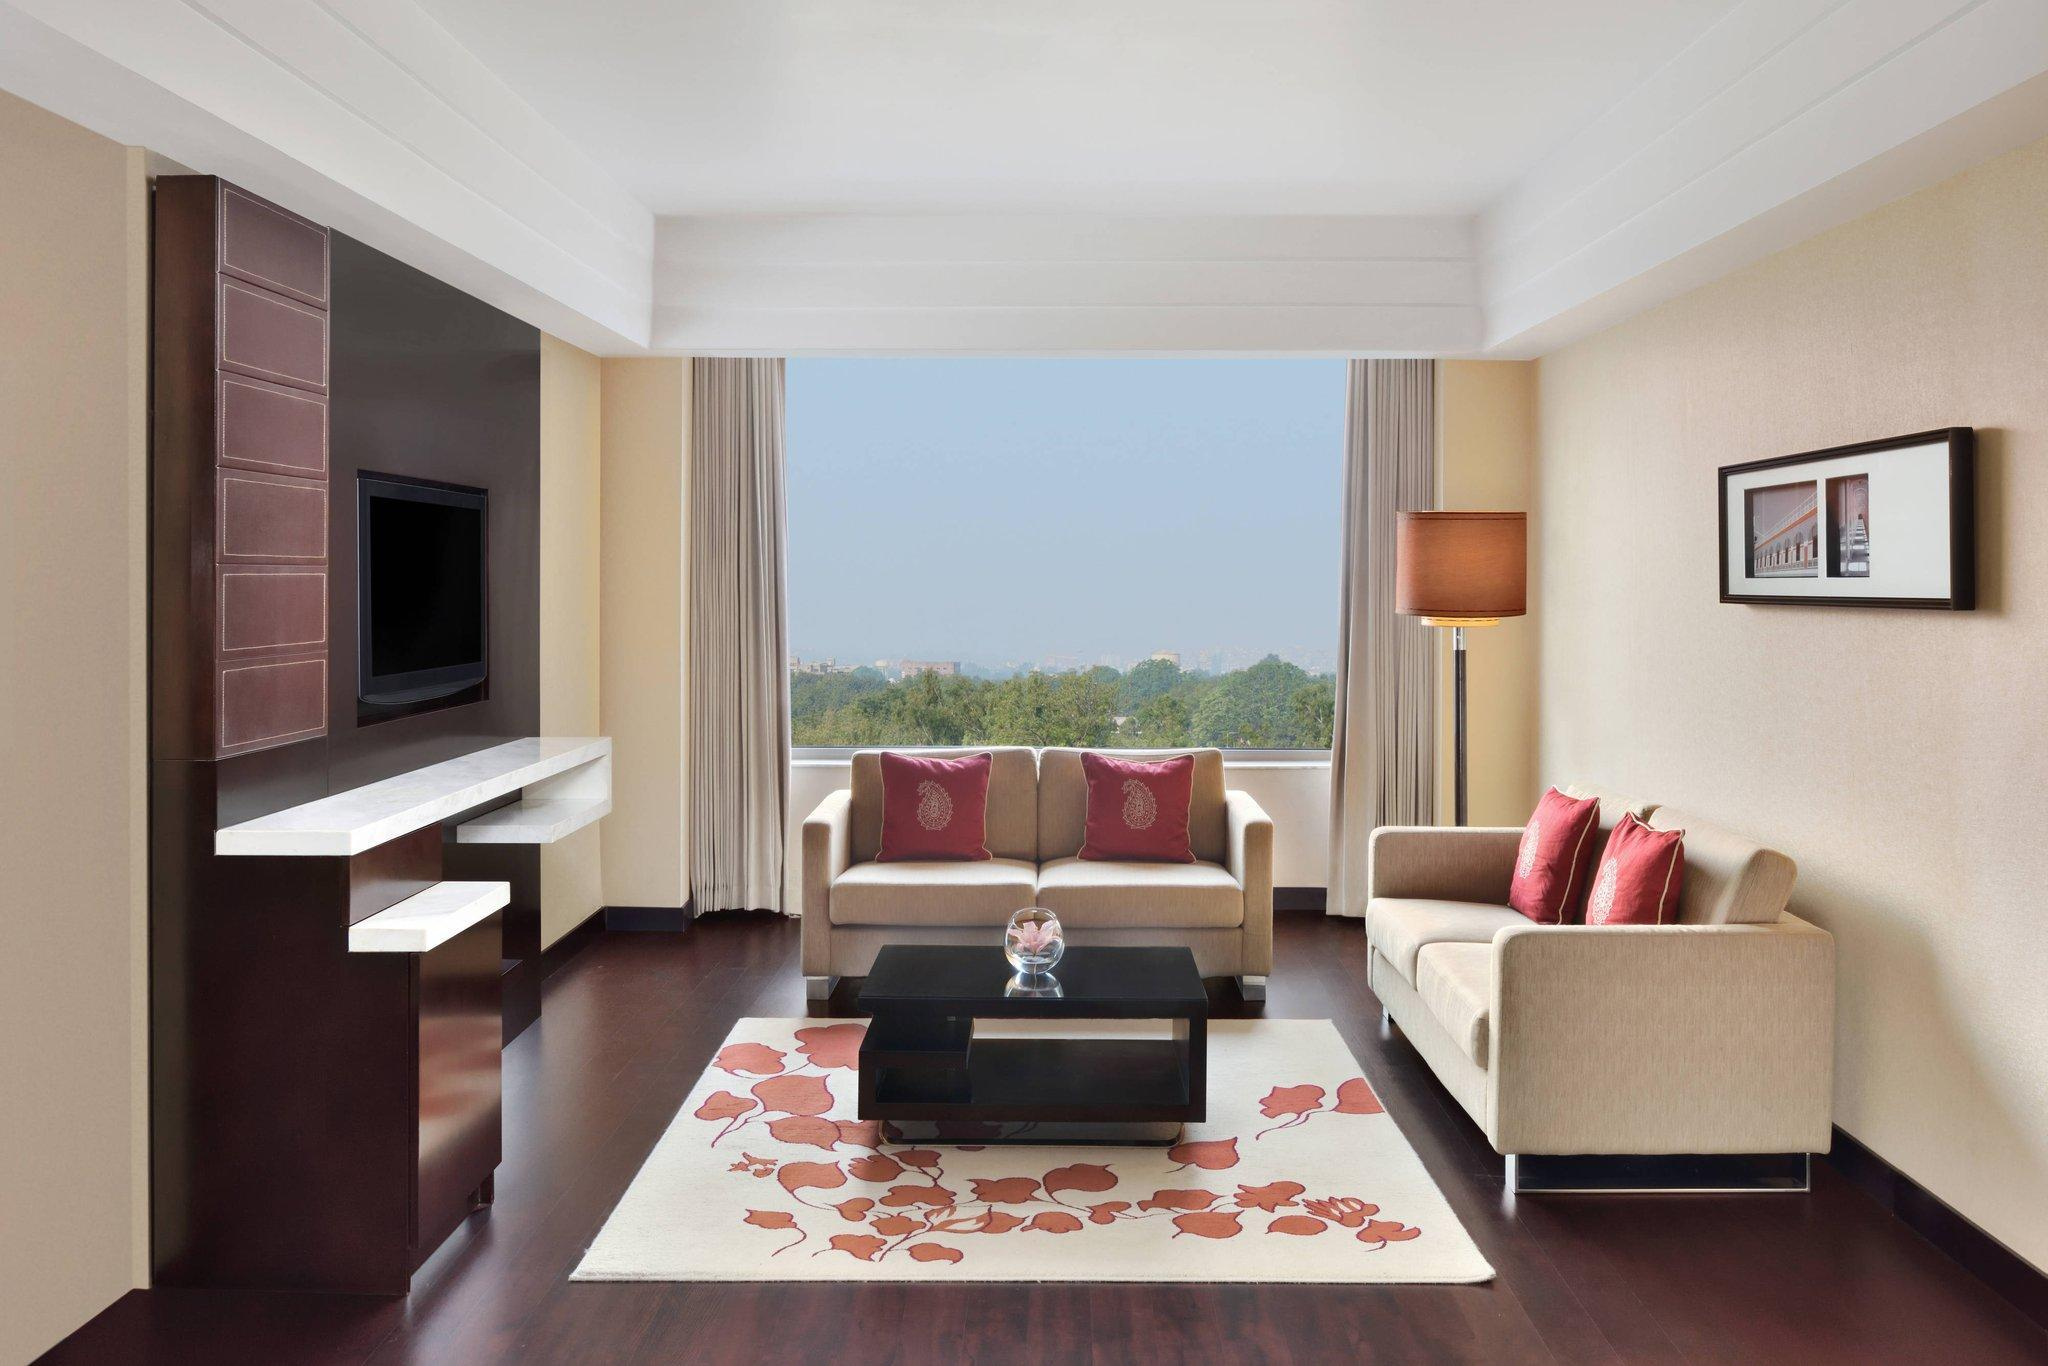 Deluxe Suite, Executive lounge access, 1 King